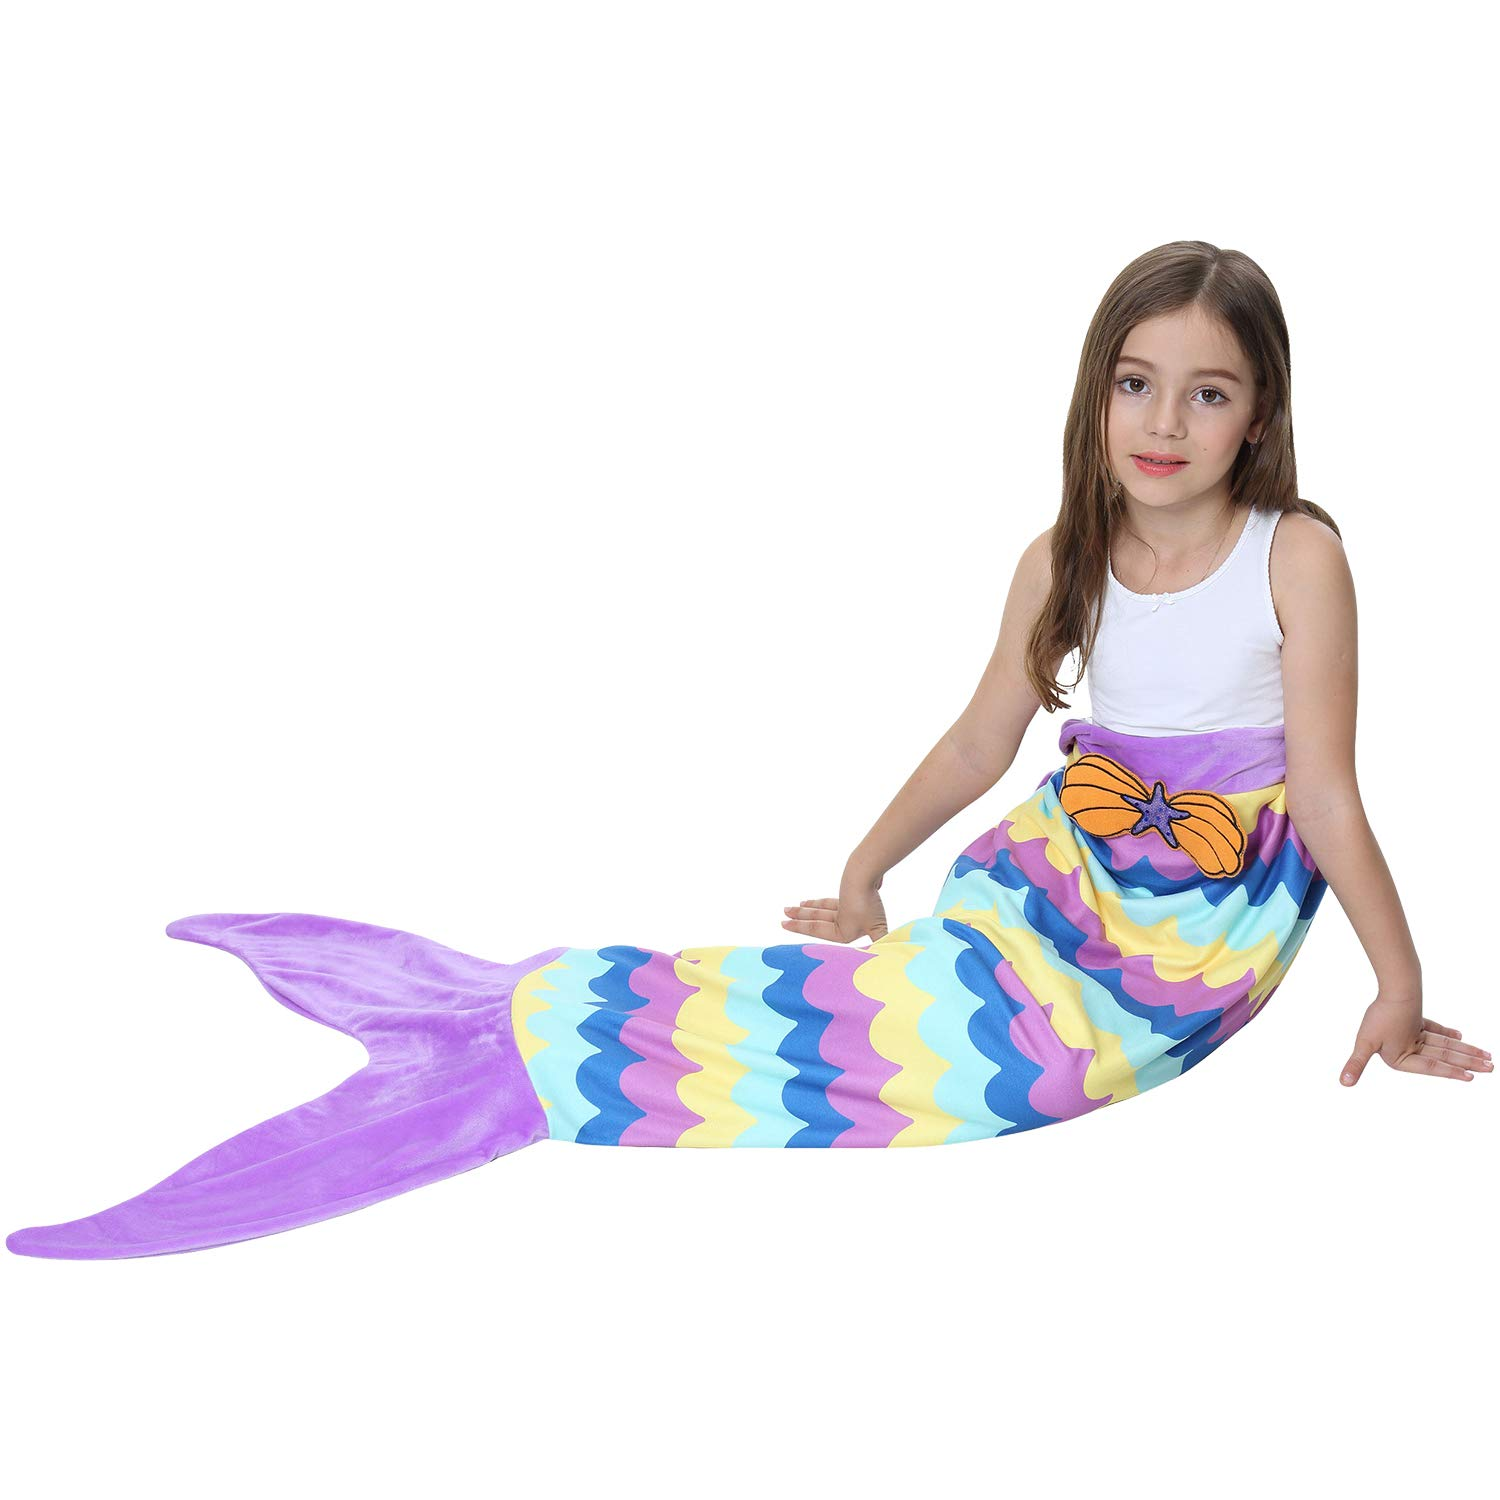 Ereon Mermaid Tail Blanket for Girls Kids Soft Plush Flannel Sleeping Bag to Keep Warm All Seasons Blanket for Girl Christmas Birthday Gift Apply to Bedroom Sofa Beach Outdoor(Purple) by Ereon (Image #5)